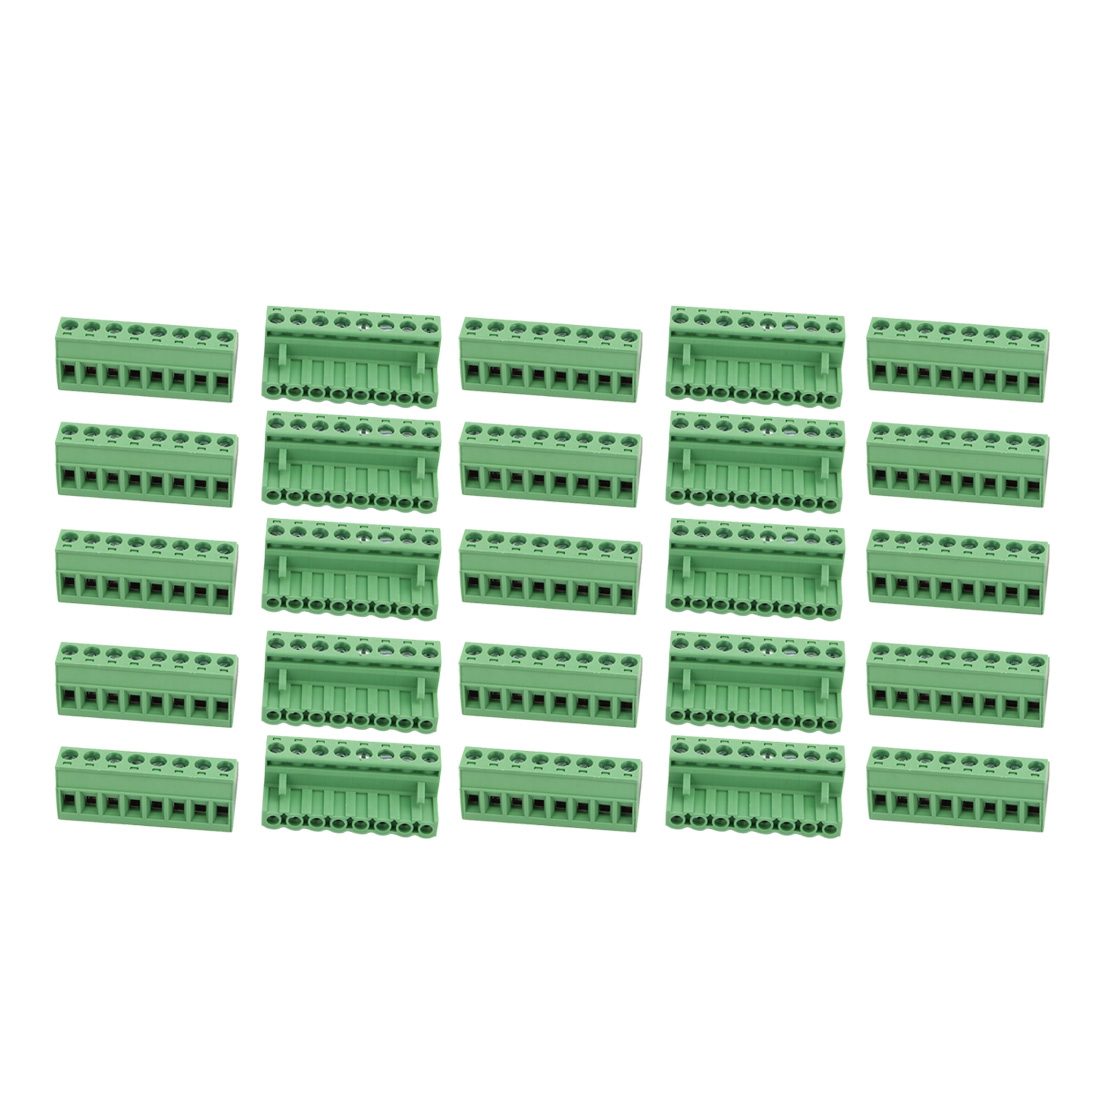 25Pcs AC 300V 15A 5.08mm Pitch 8P Terminal Block Wire Connector for PCB Mounting